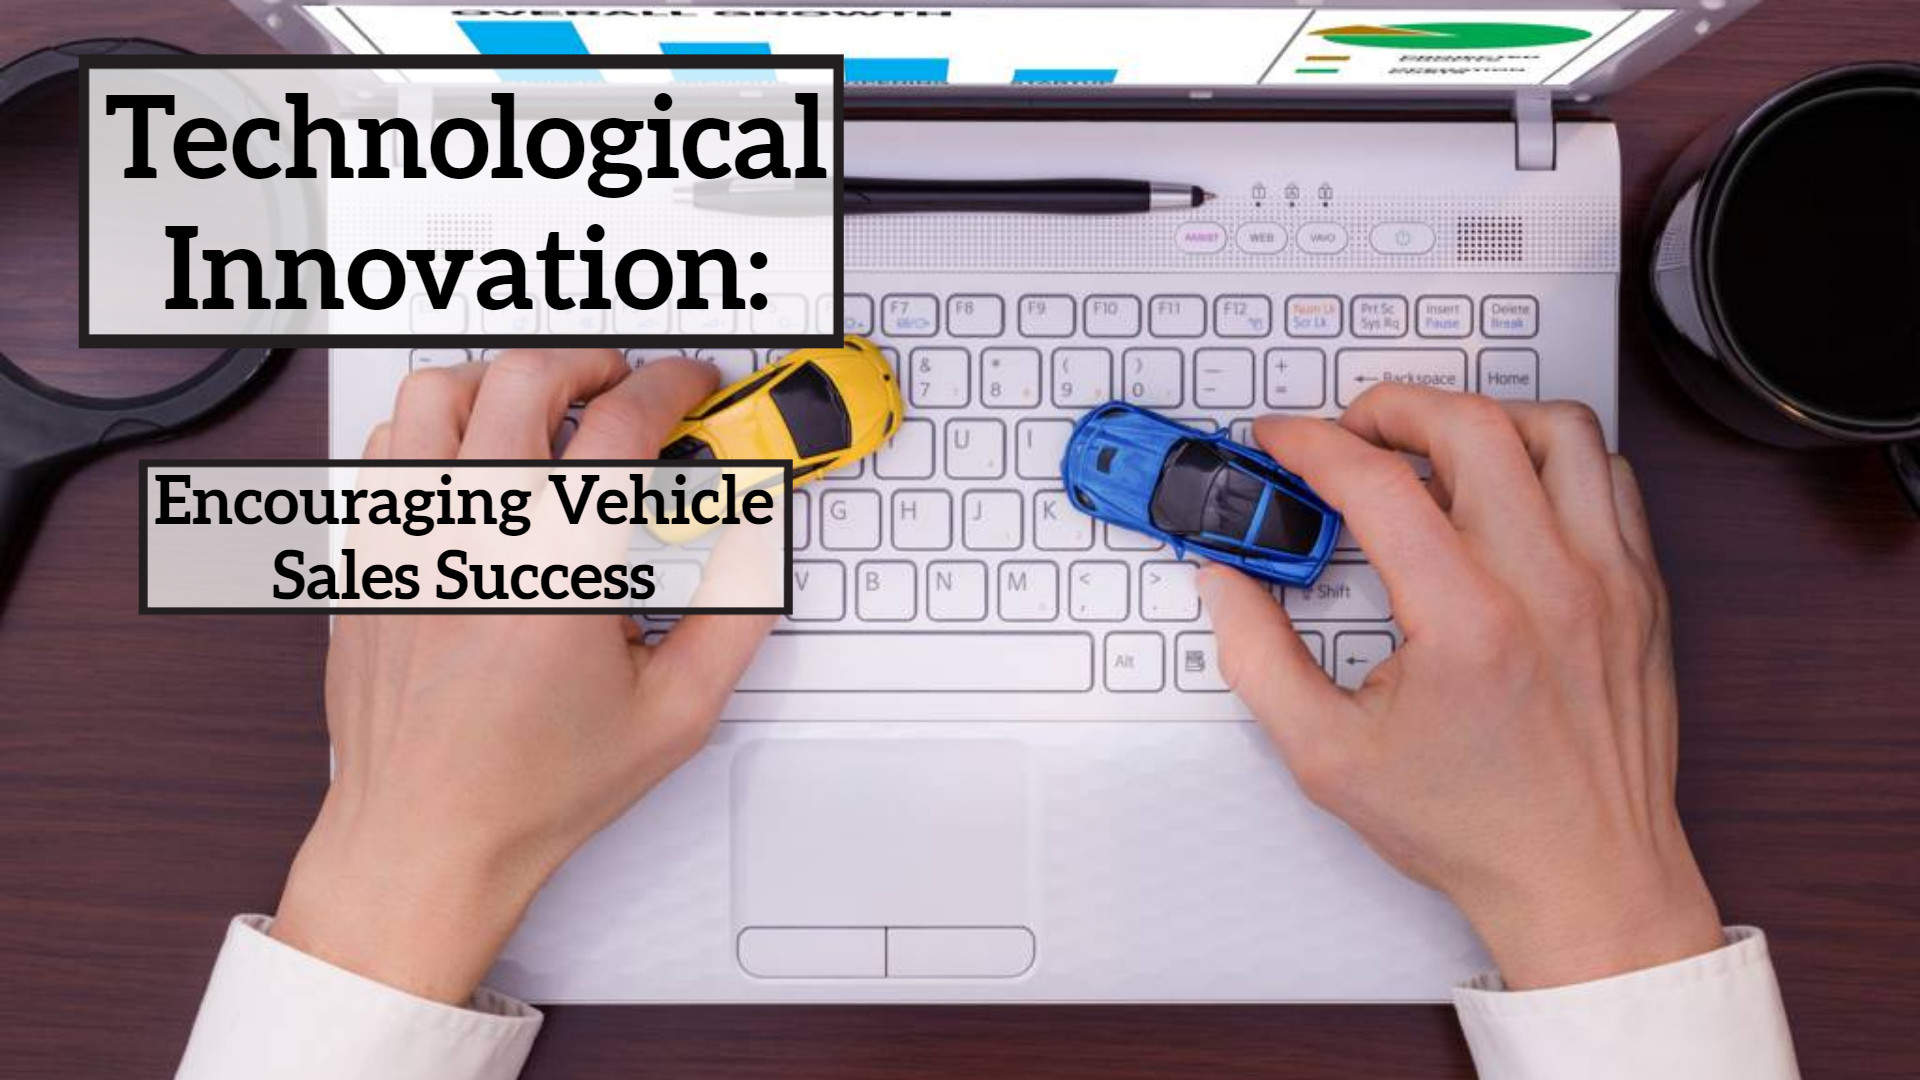 Technical innovation to encourage vehicle sales